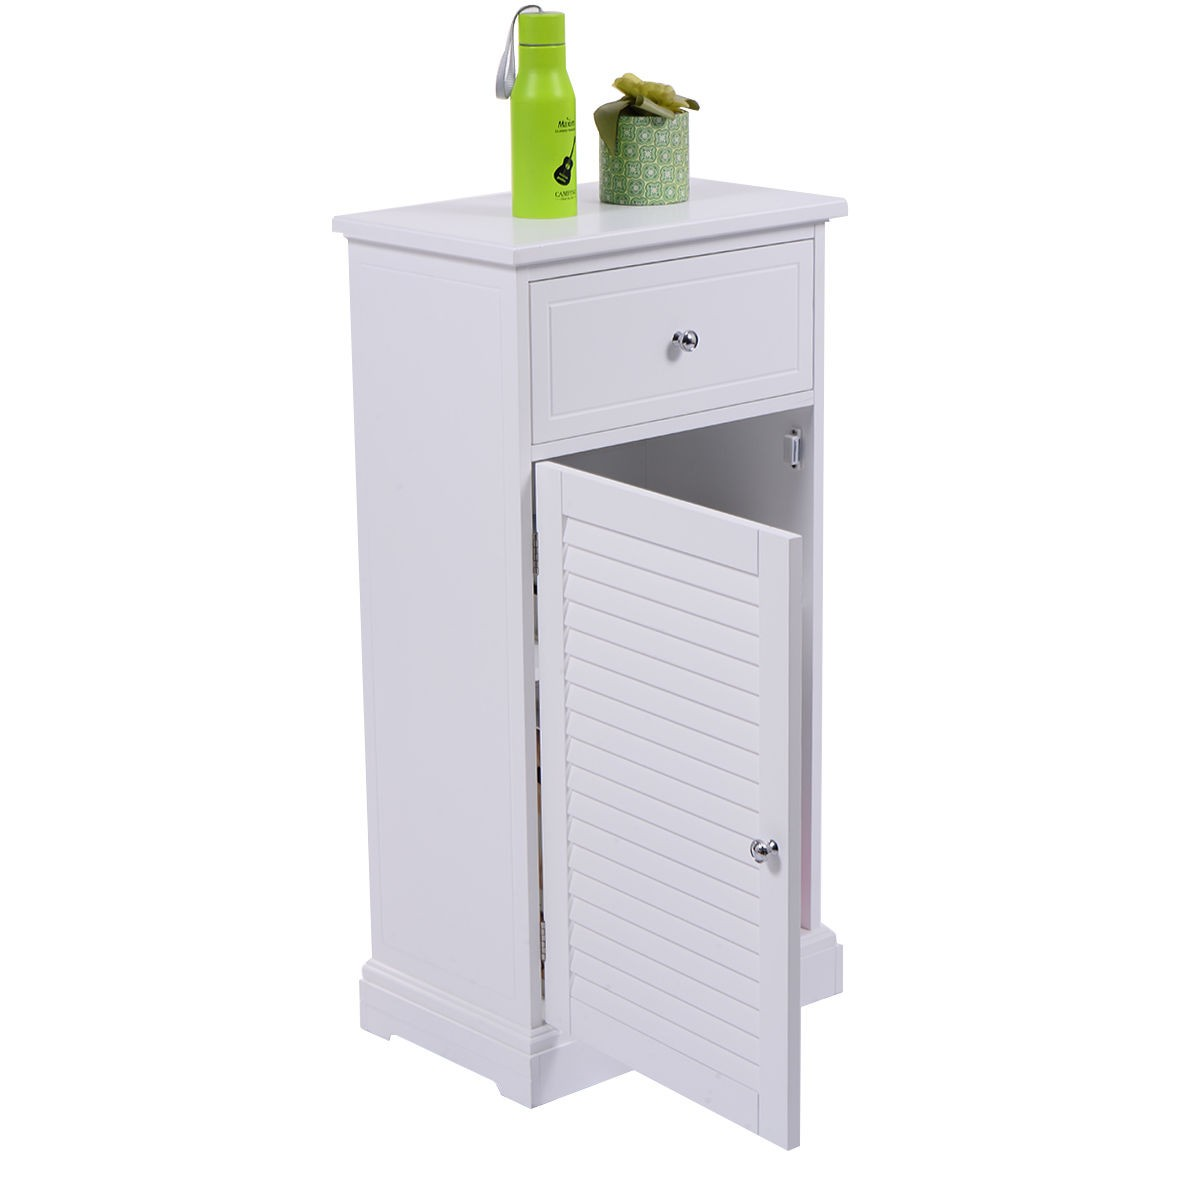 bathroom cabinet door organizer storage floor cabinet shutter door bathroom cupboard shelf 11026